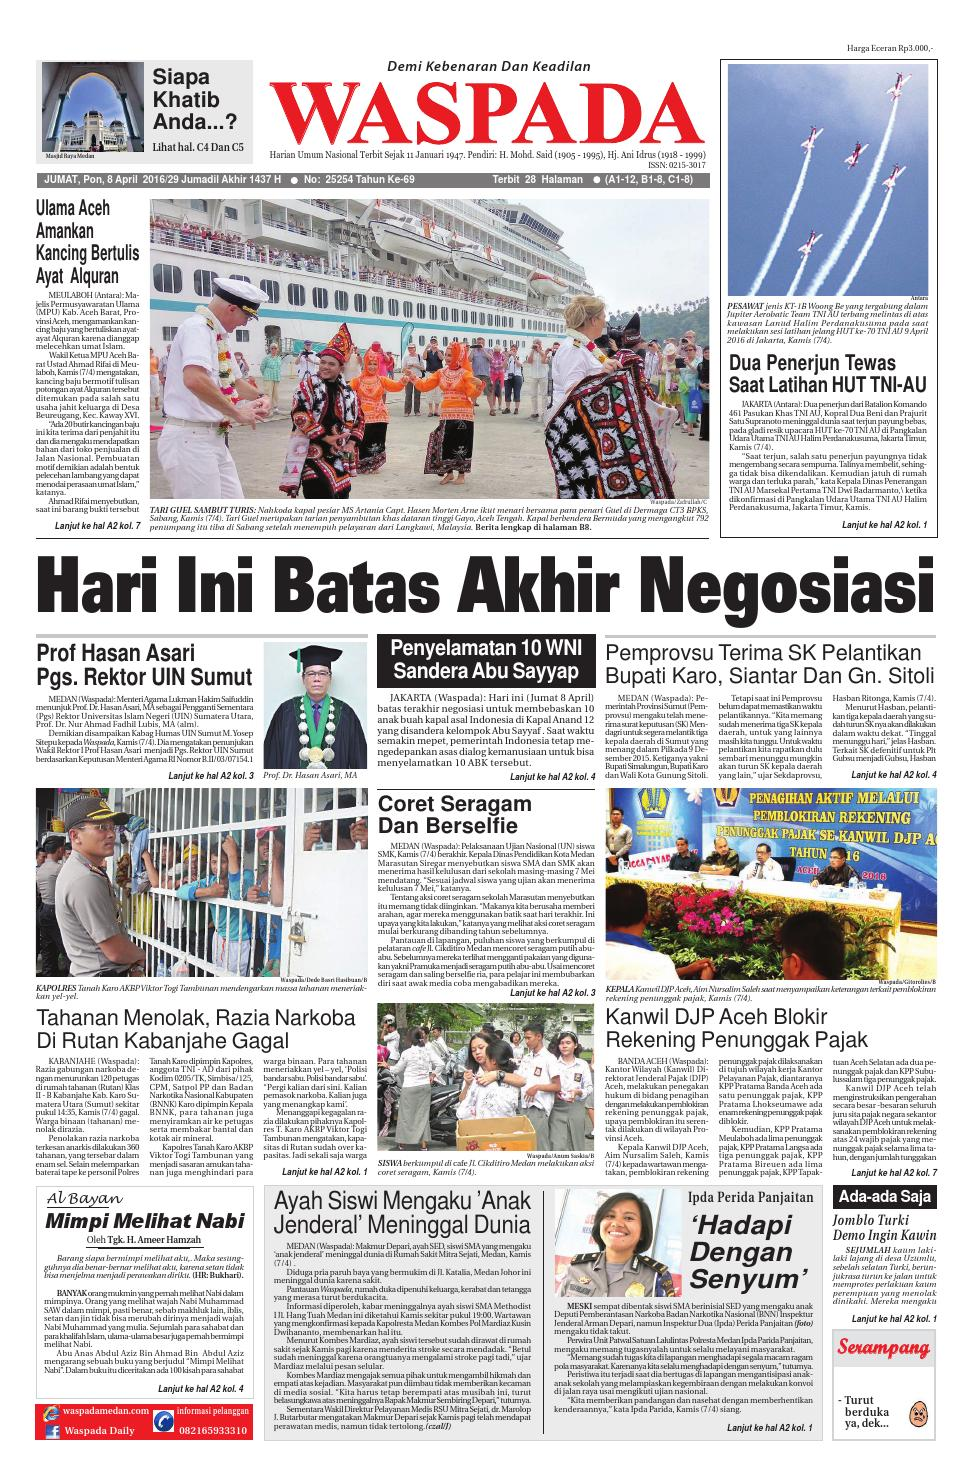 Wasapada Jumat 8 April 2016 By Harian Waspada Issuu